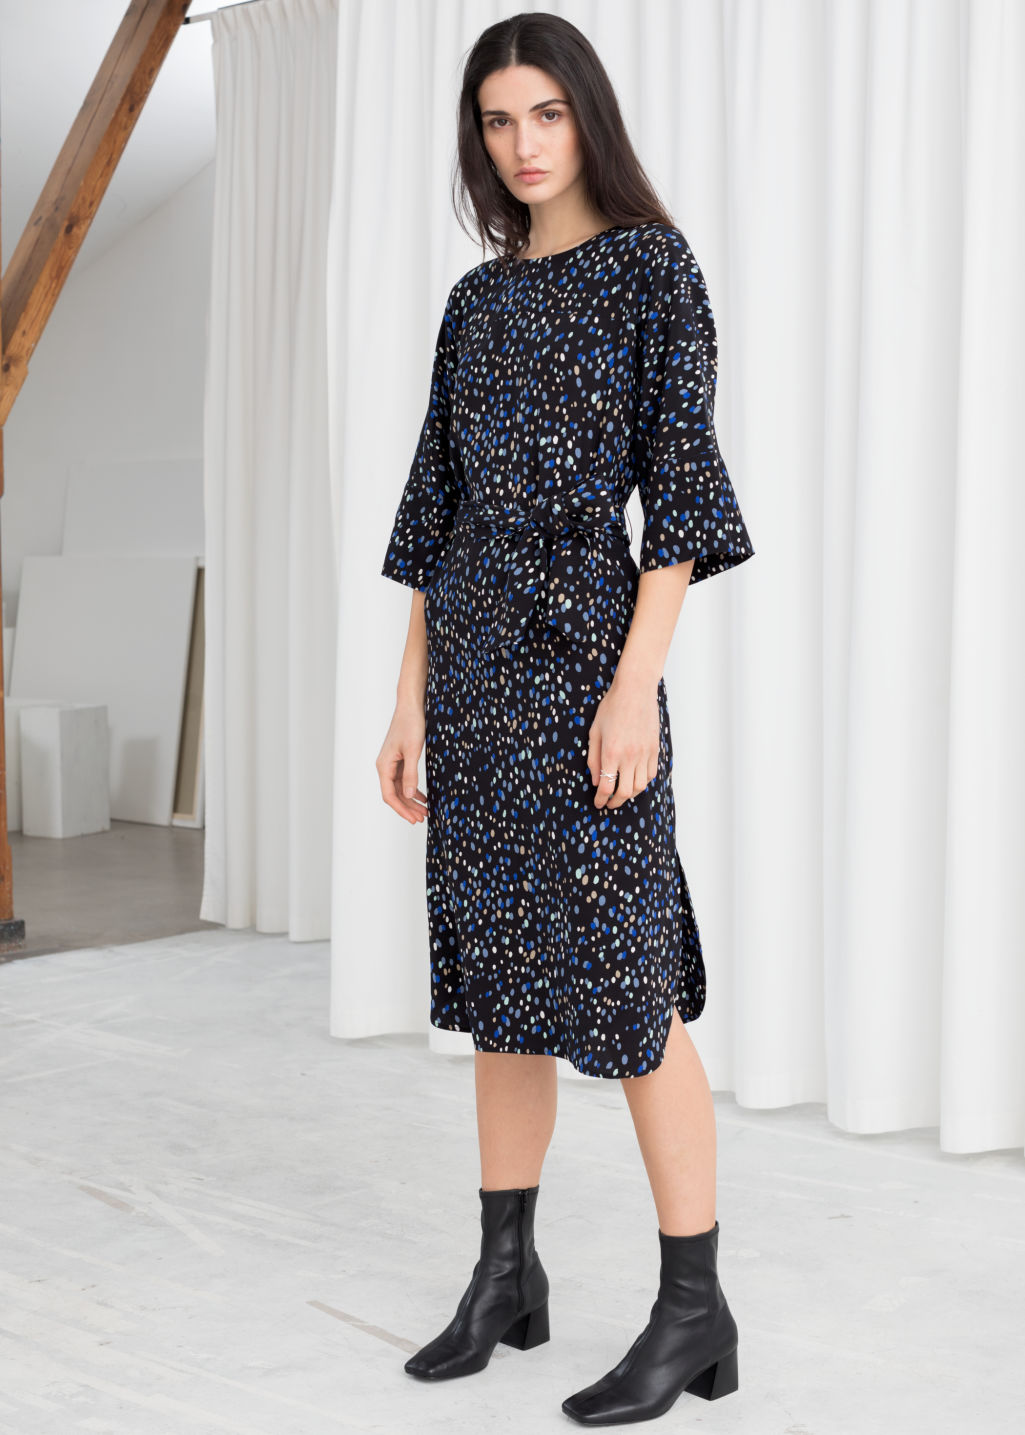 04f4db8072f1 Belted Polka Dot Midi Dress - Polka Dot - Midi dresses -   Other Stories